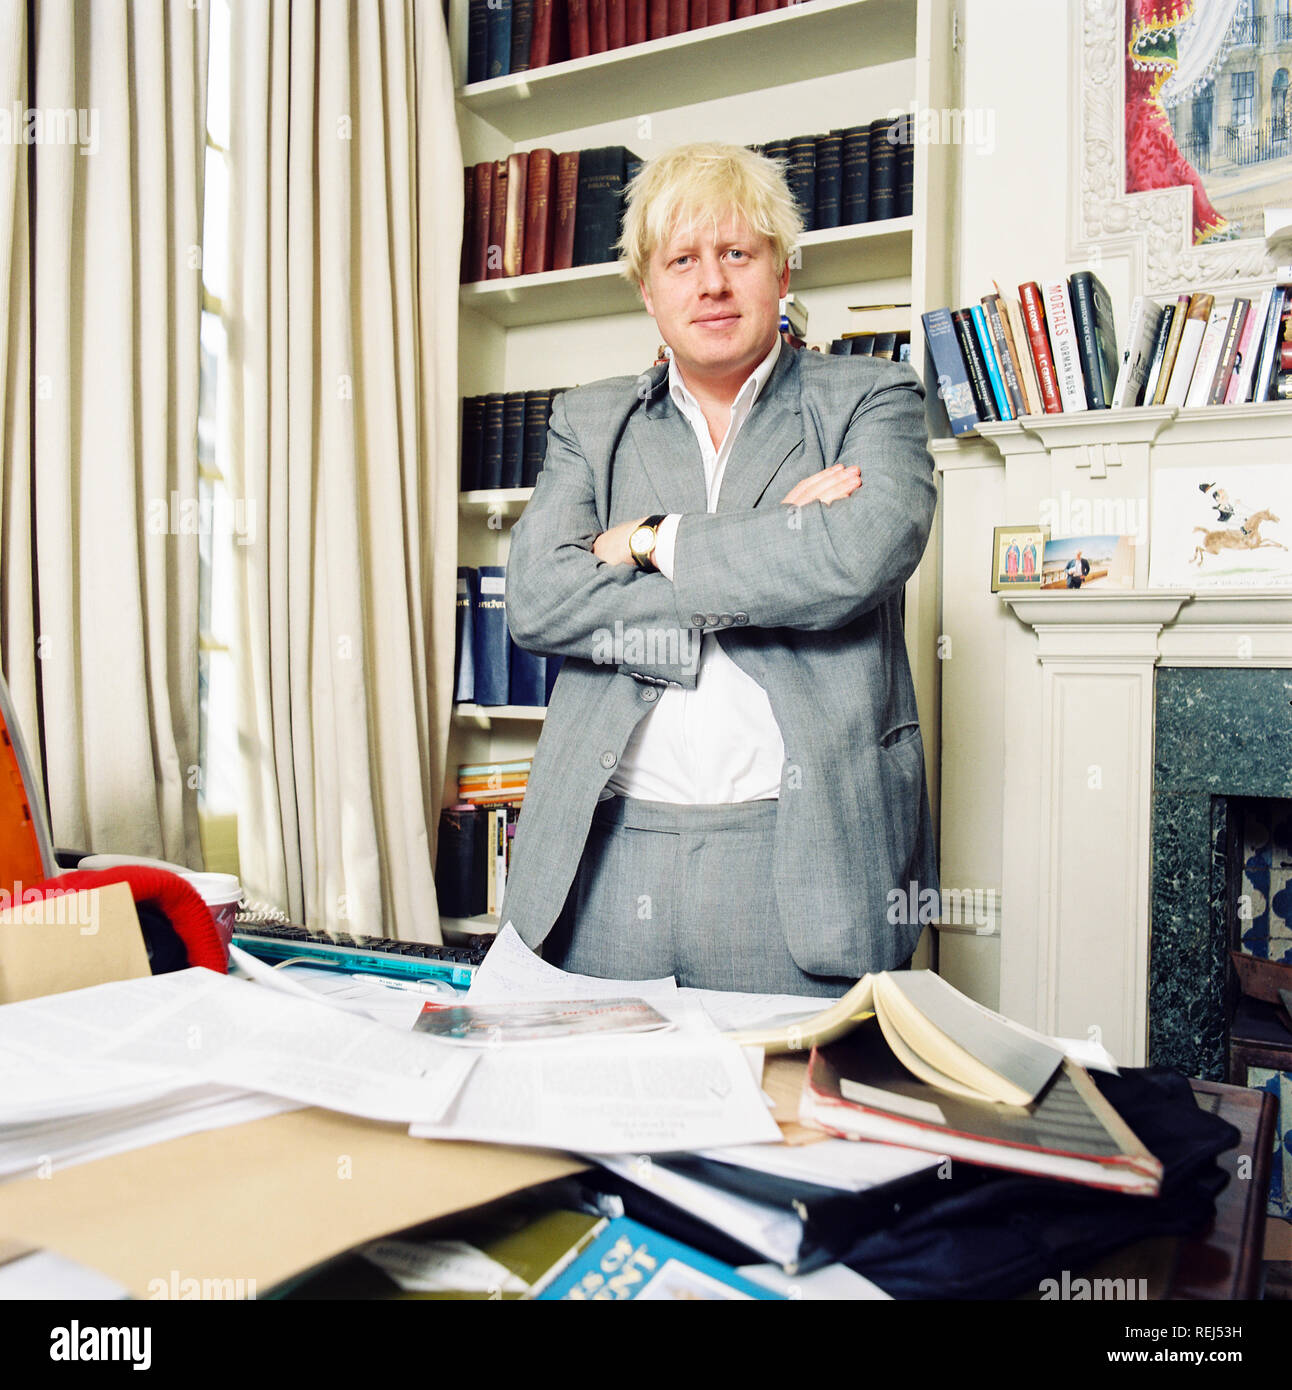 Boris Johnson conservative MP and editor of the Spectator magazine photographed in the Spectator magazine office in 2003, Westminster, London, England. - Stock Image